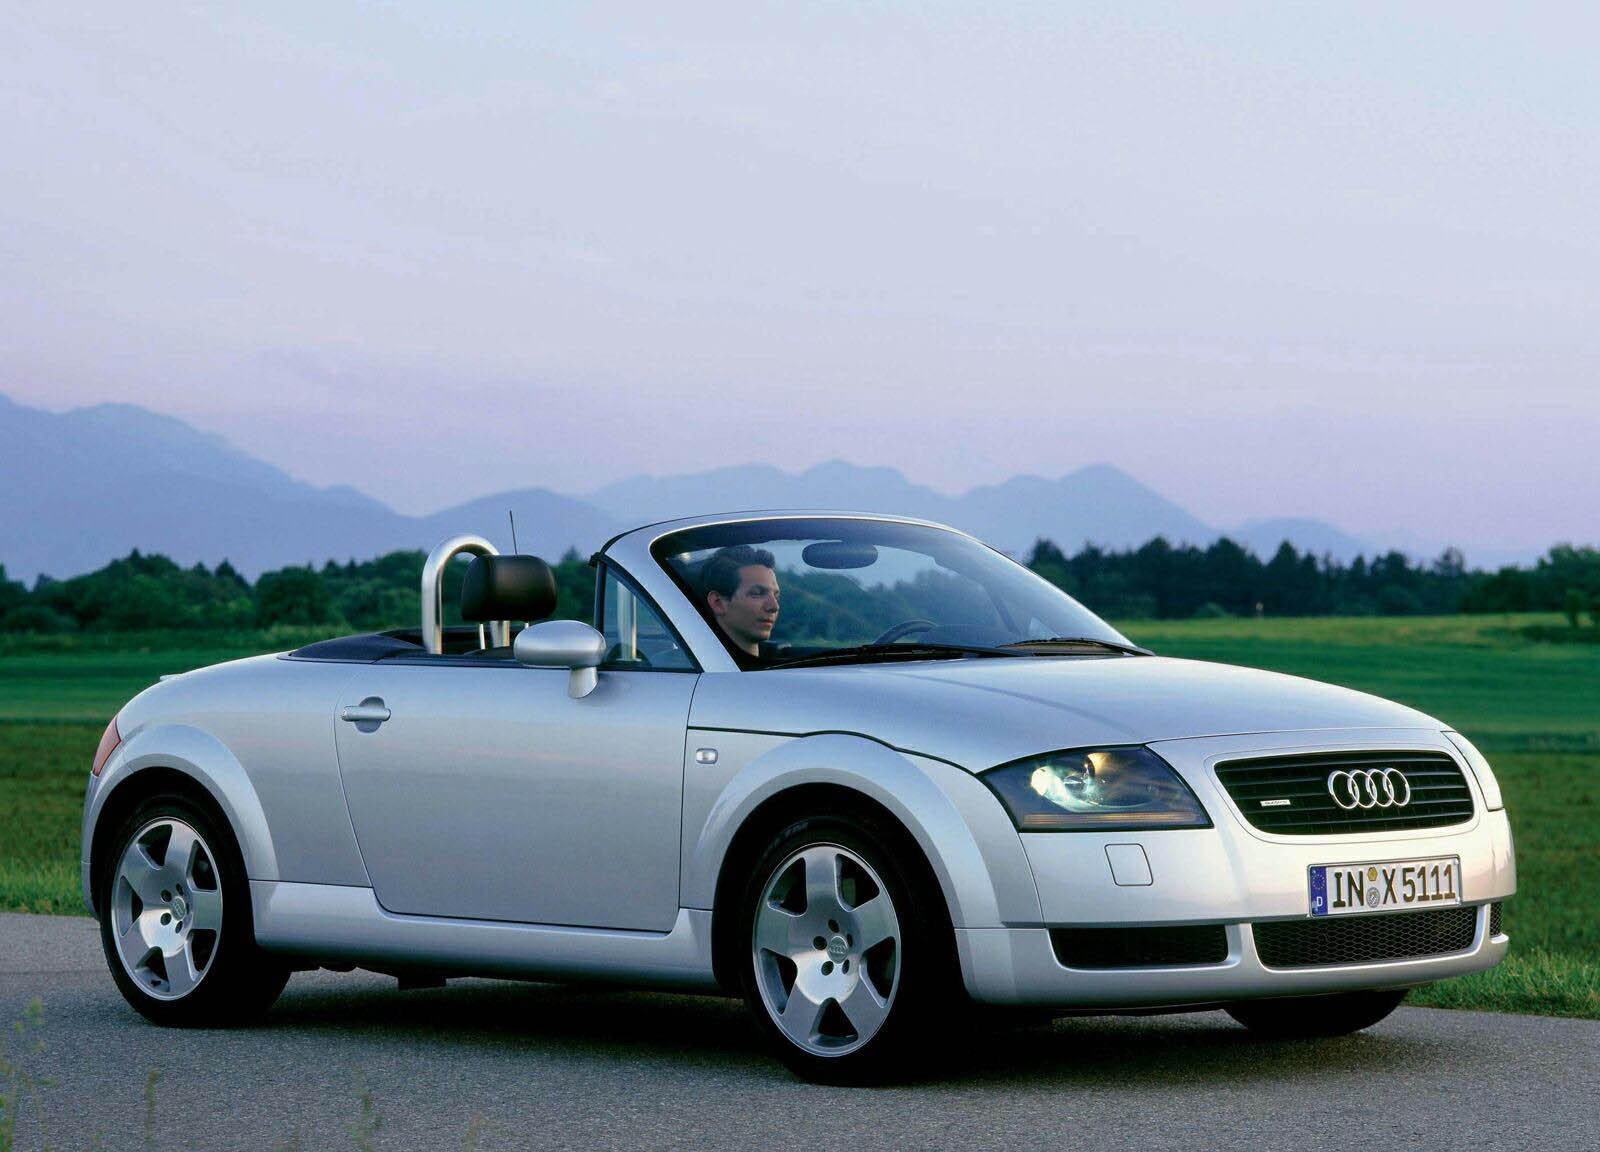 2003 audi tt roadster picture 2059 car review top speed. Black Bedroom Furniture Sets. Home Design Ideas